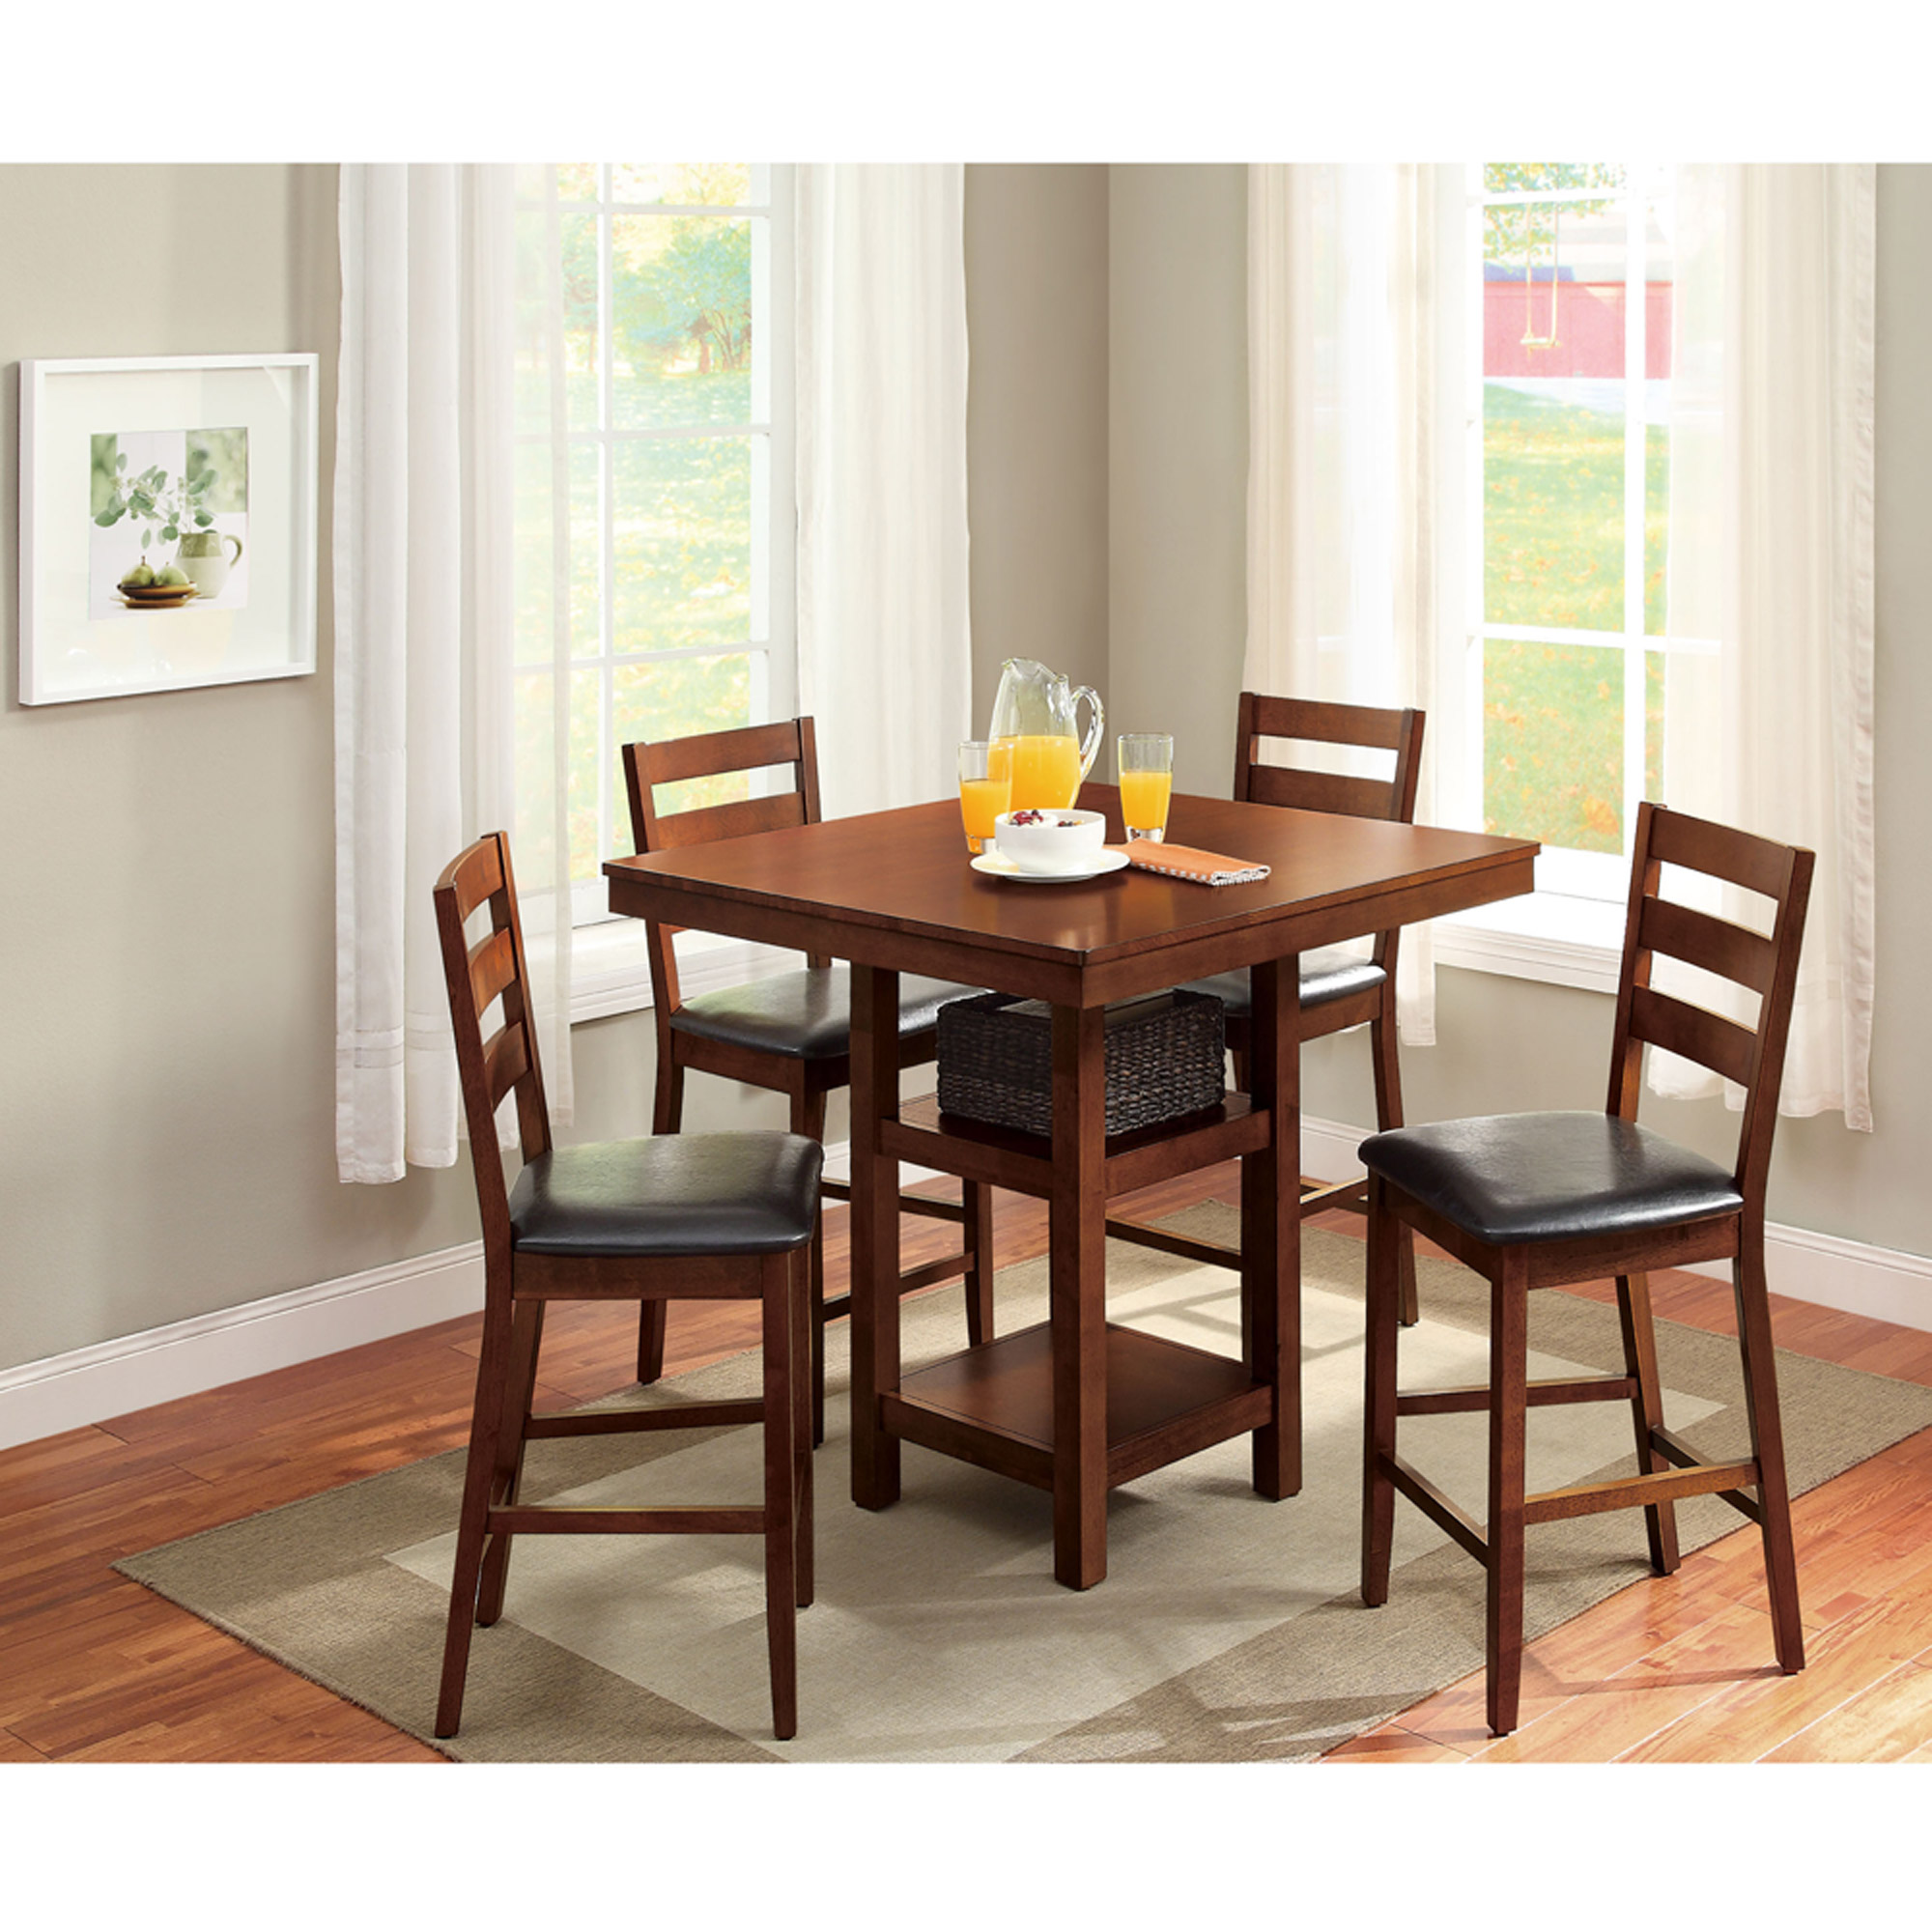 Awesome Kitchen u0026 Dining Furniture - Walmart.com dining room table and chairs